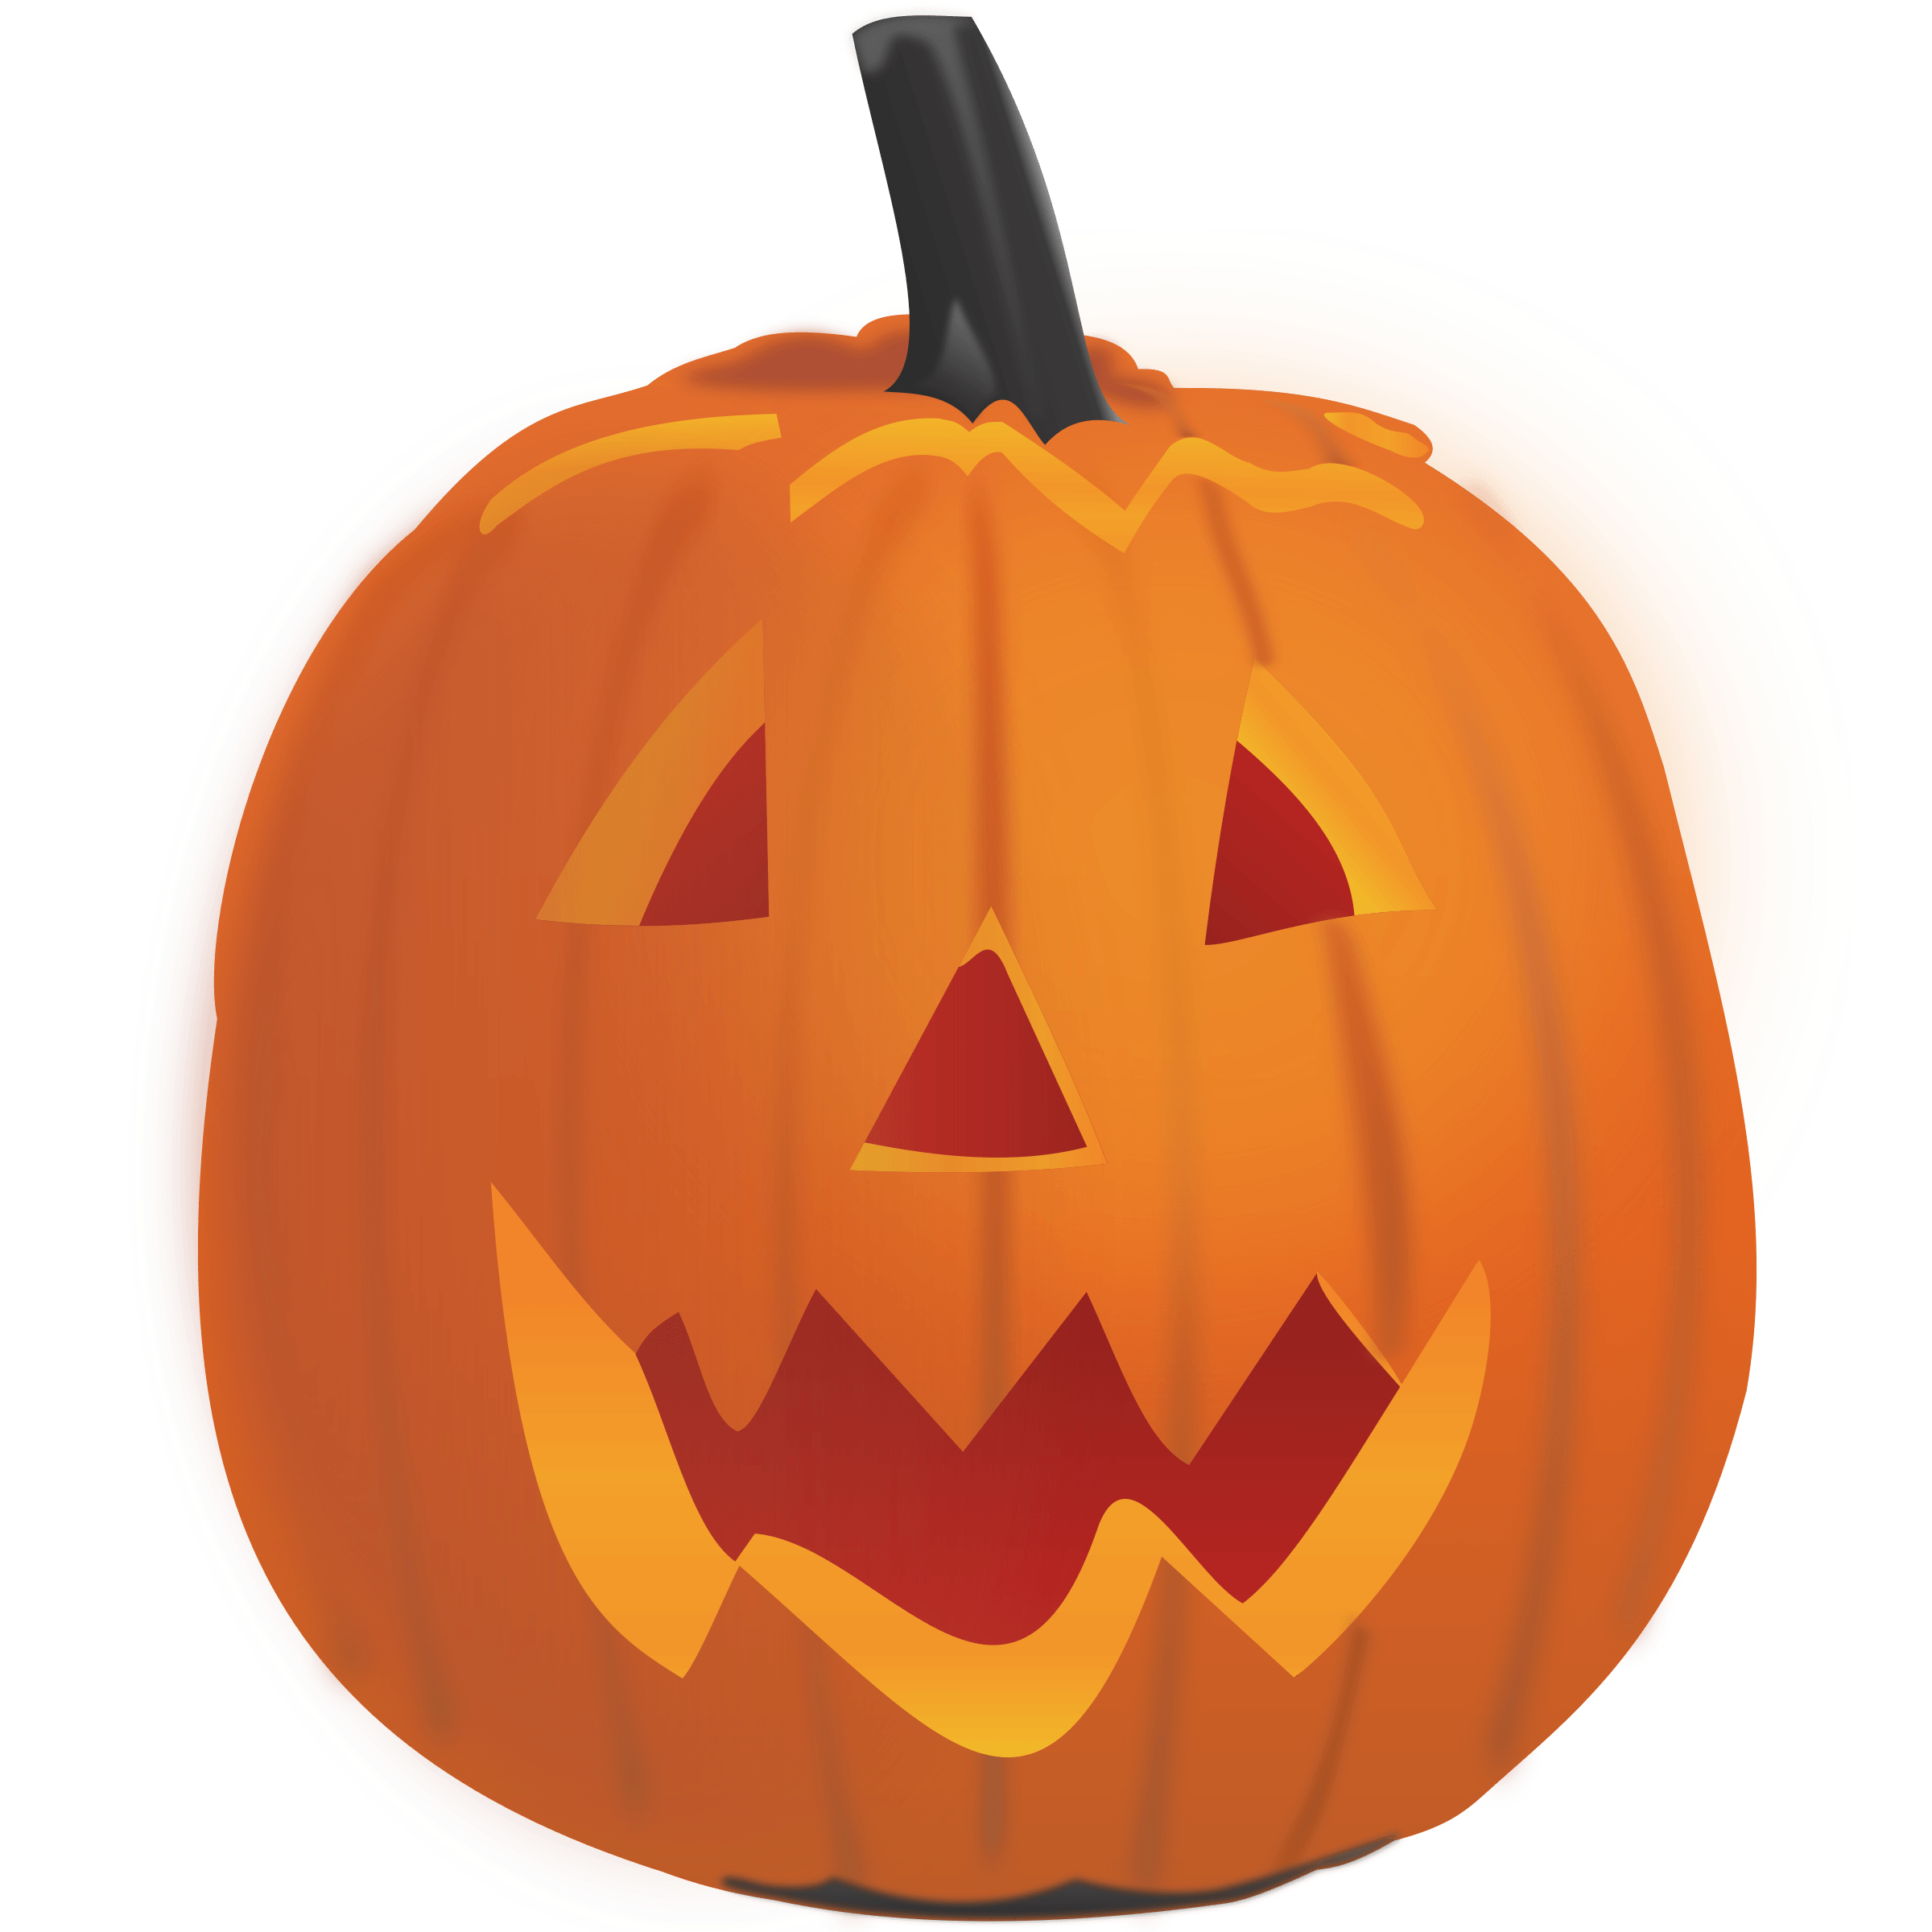 Running pumpkin clipart image black and white library Halloween Profile Cliparts Free collection | Download and share ... image black and white library